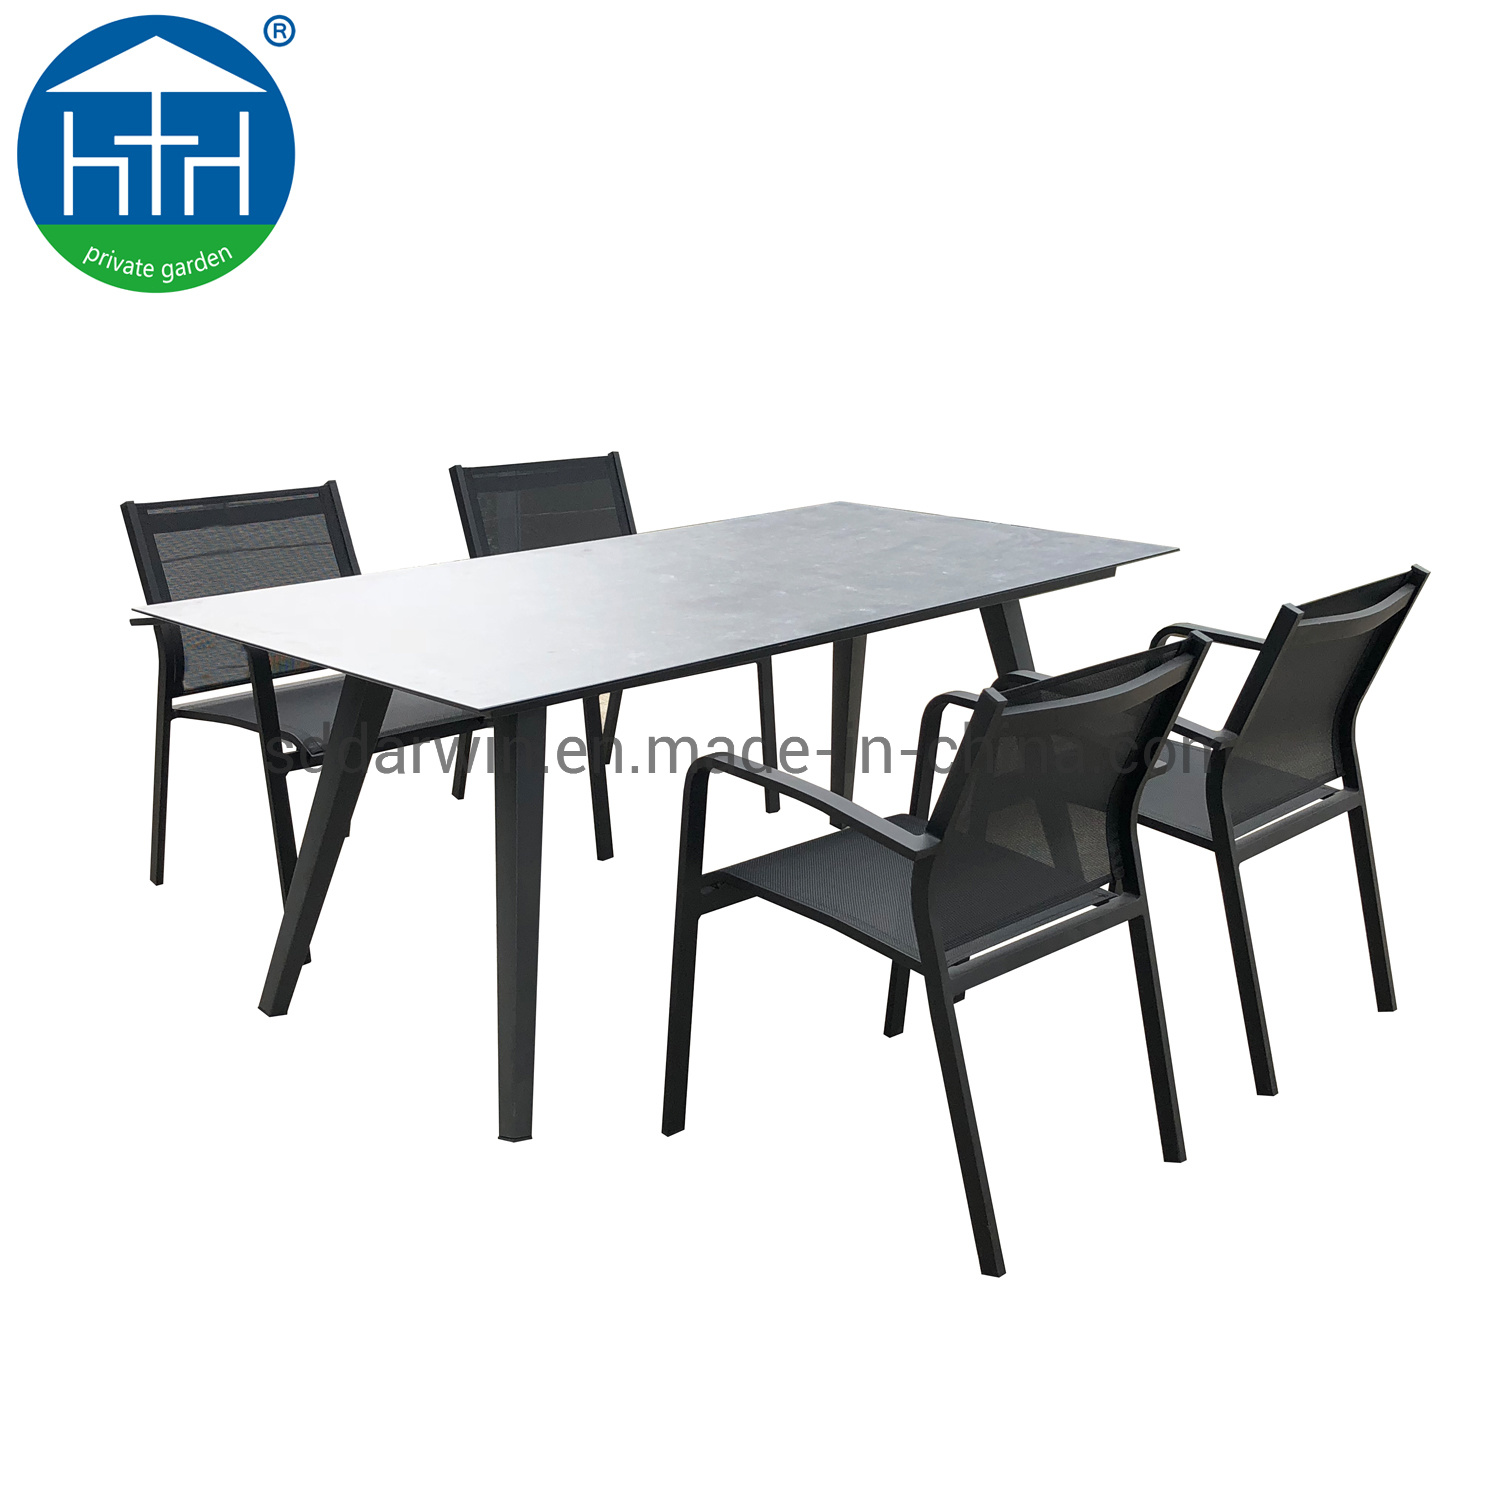 China Modern Extendable Alchemy Glass Dining Table All Weather Aluminum Batyline Chair Outdoor Furniture Photos Pictures Made In China Com